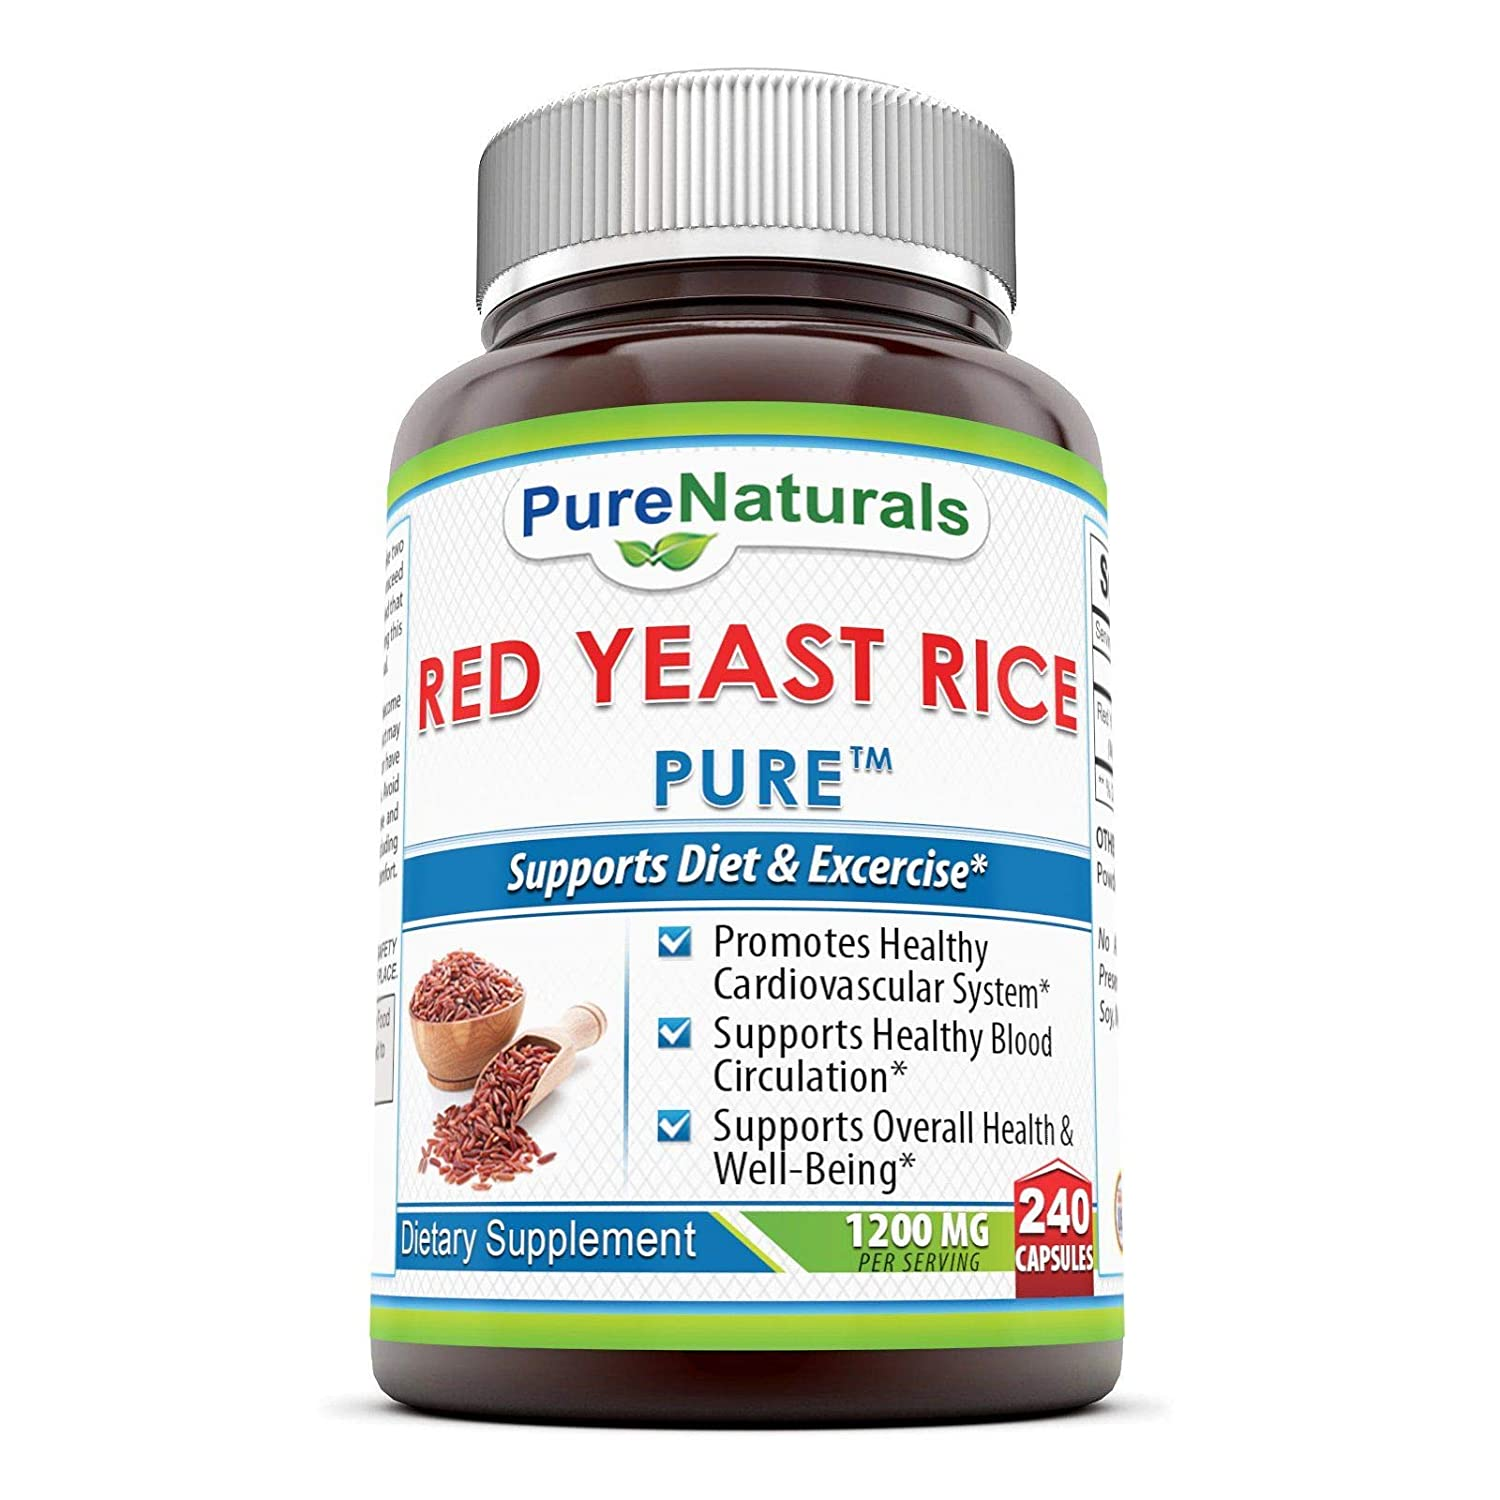 Pure Naturals Red Yeast Rice Dietary Supplement, 1200 Mg, 240 Count: Amazon.es: Salud y cuidado personal